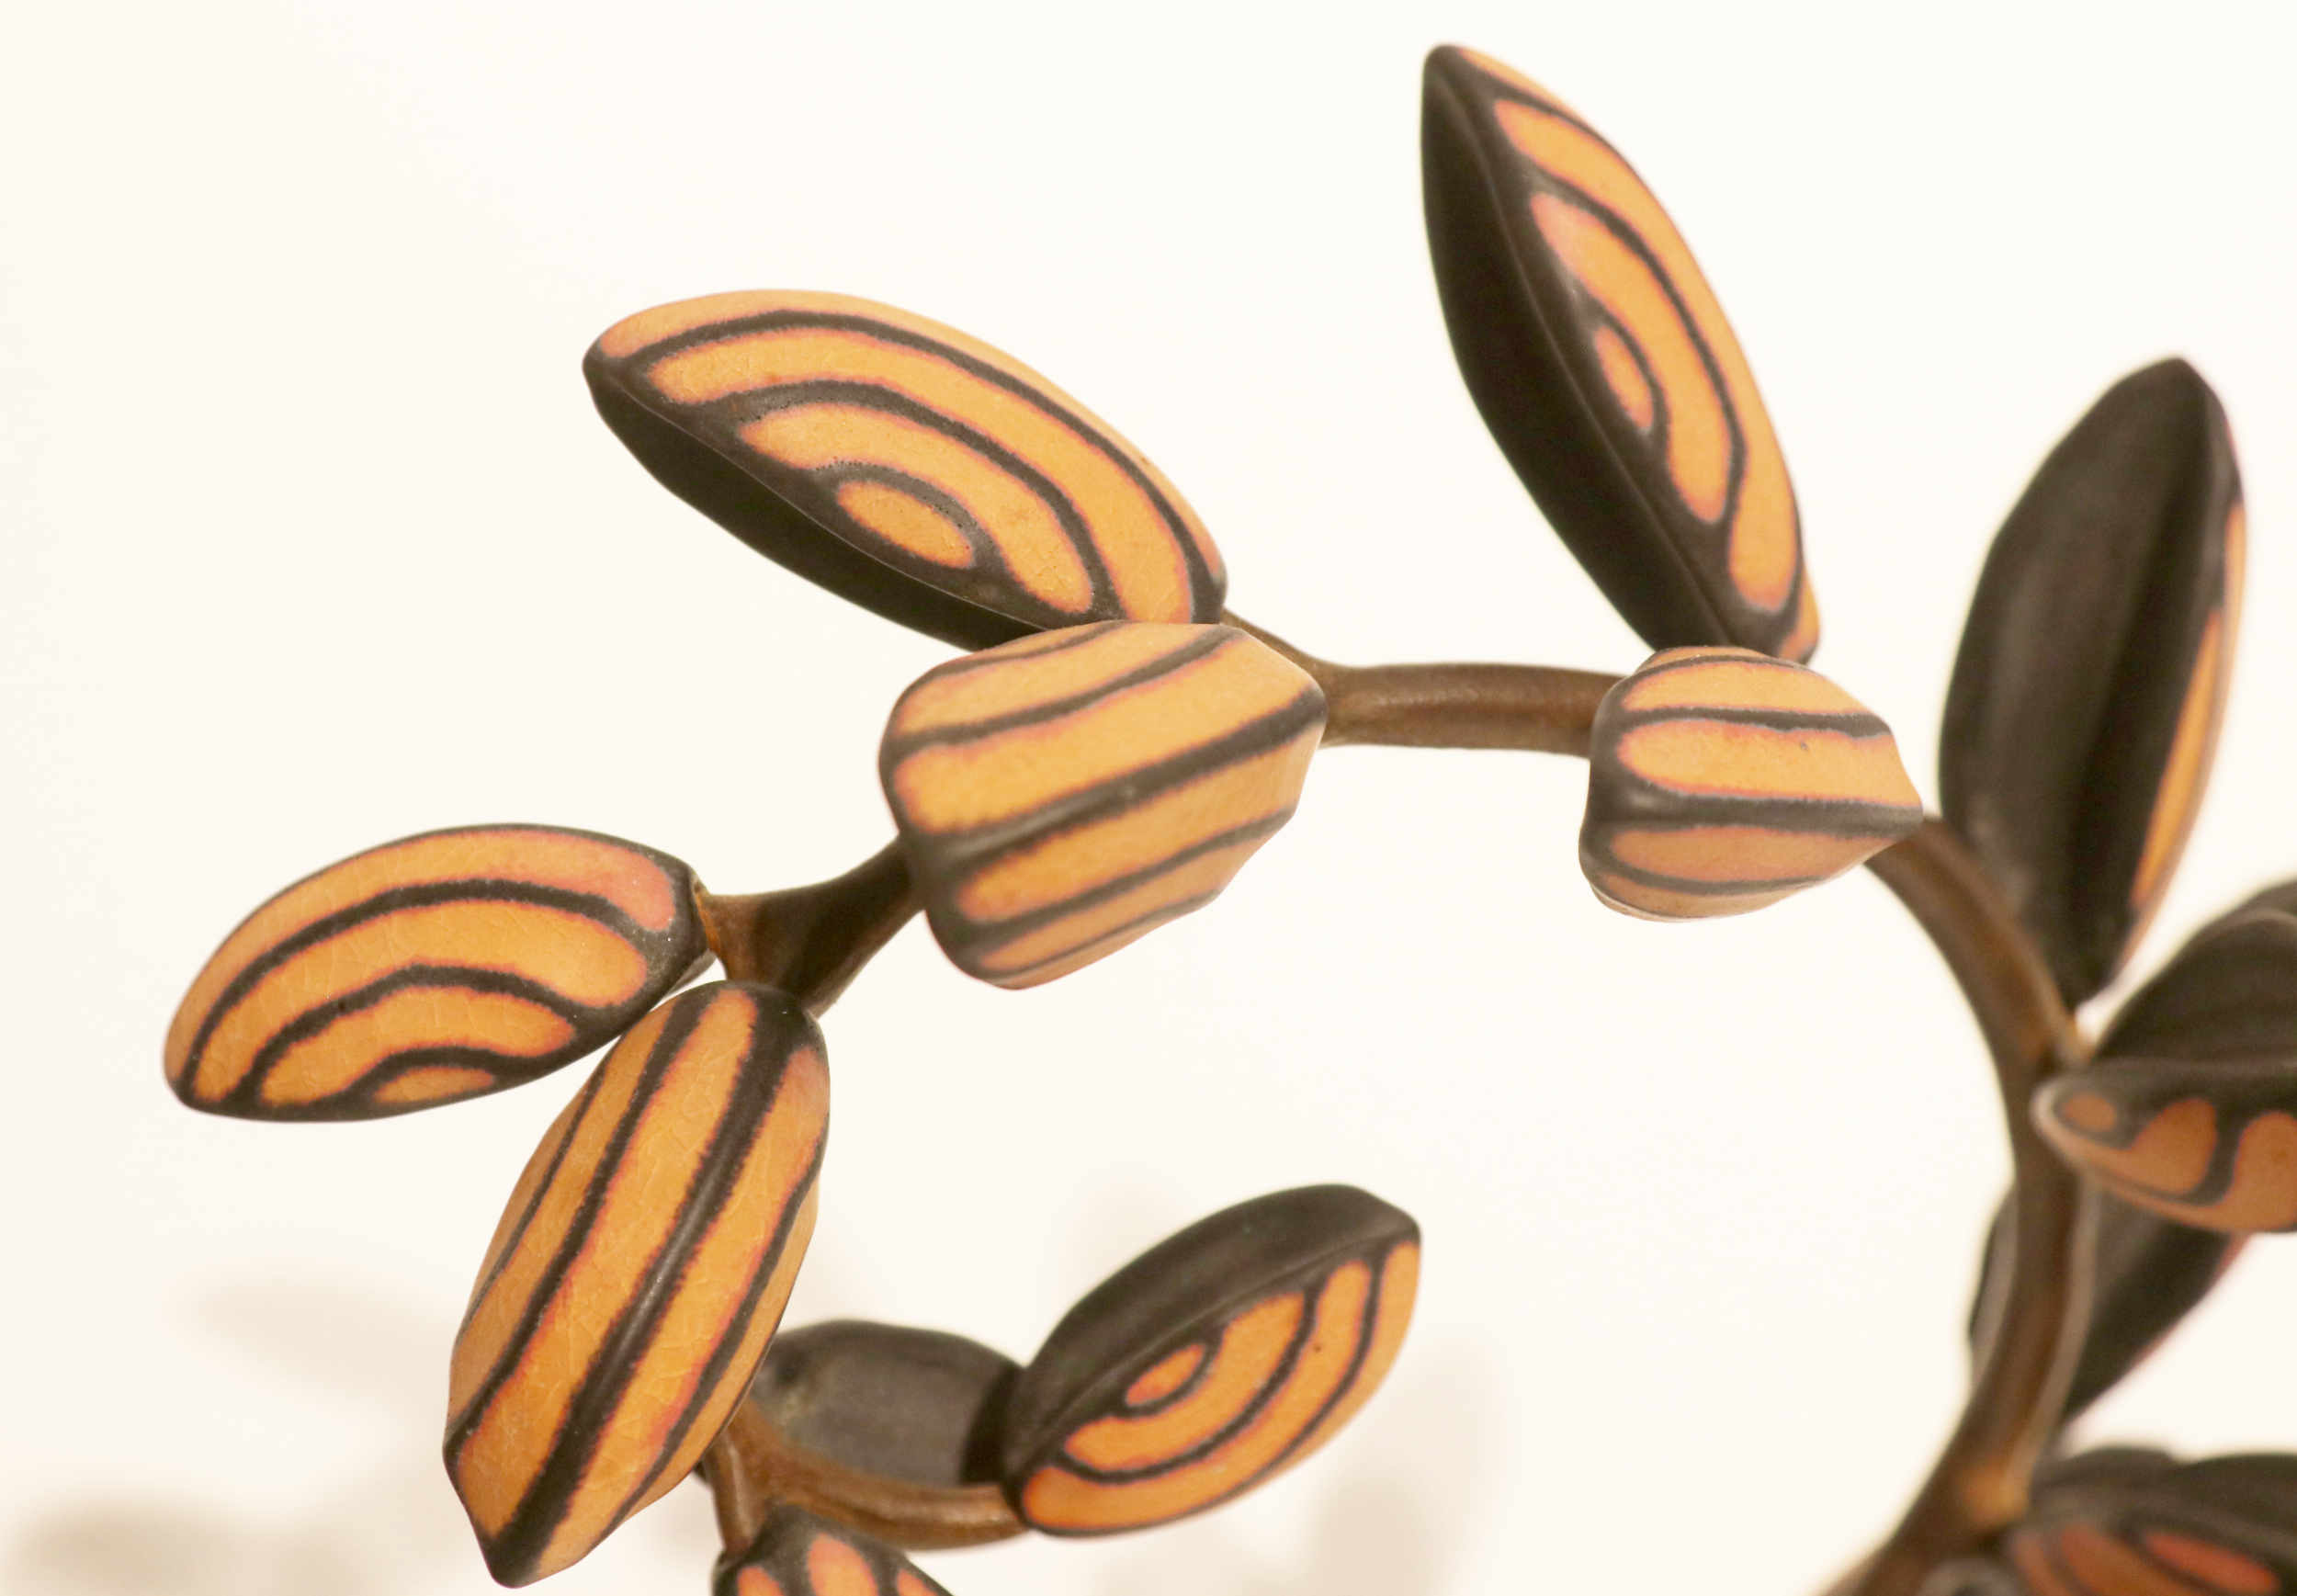 Michael Sherrill, Honey Locust (detail), 2001. Porcelain, forged steel.